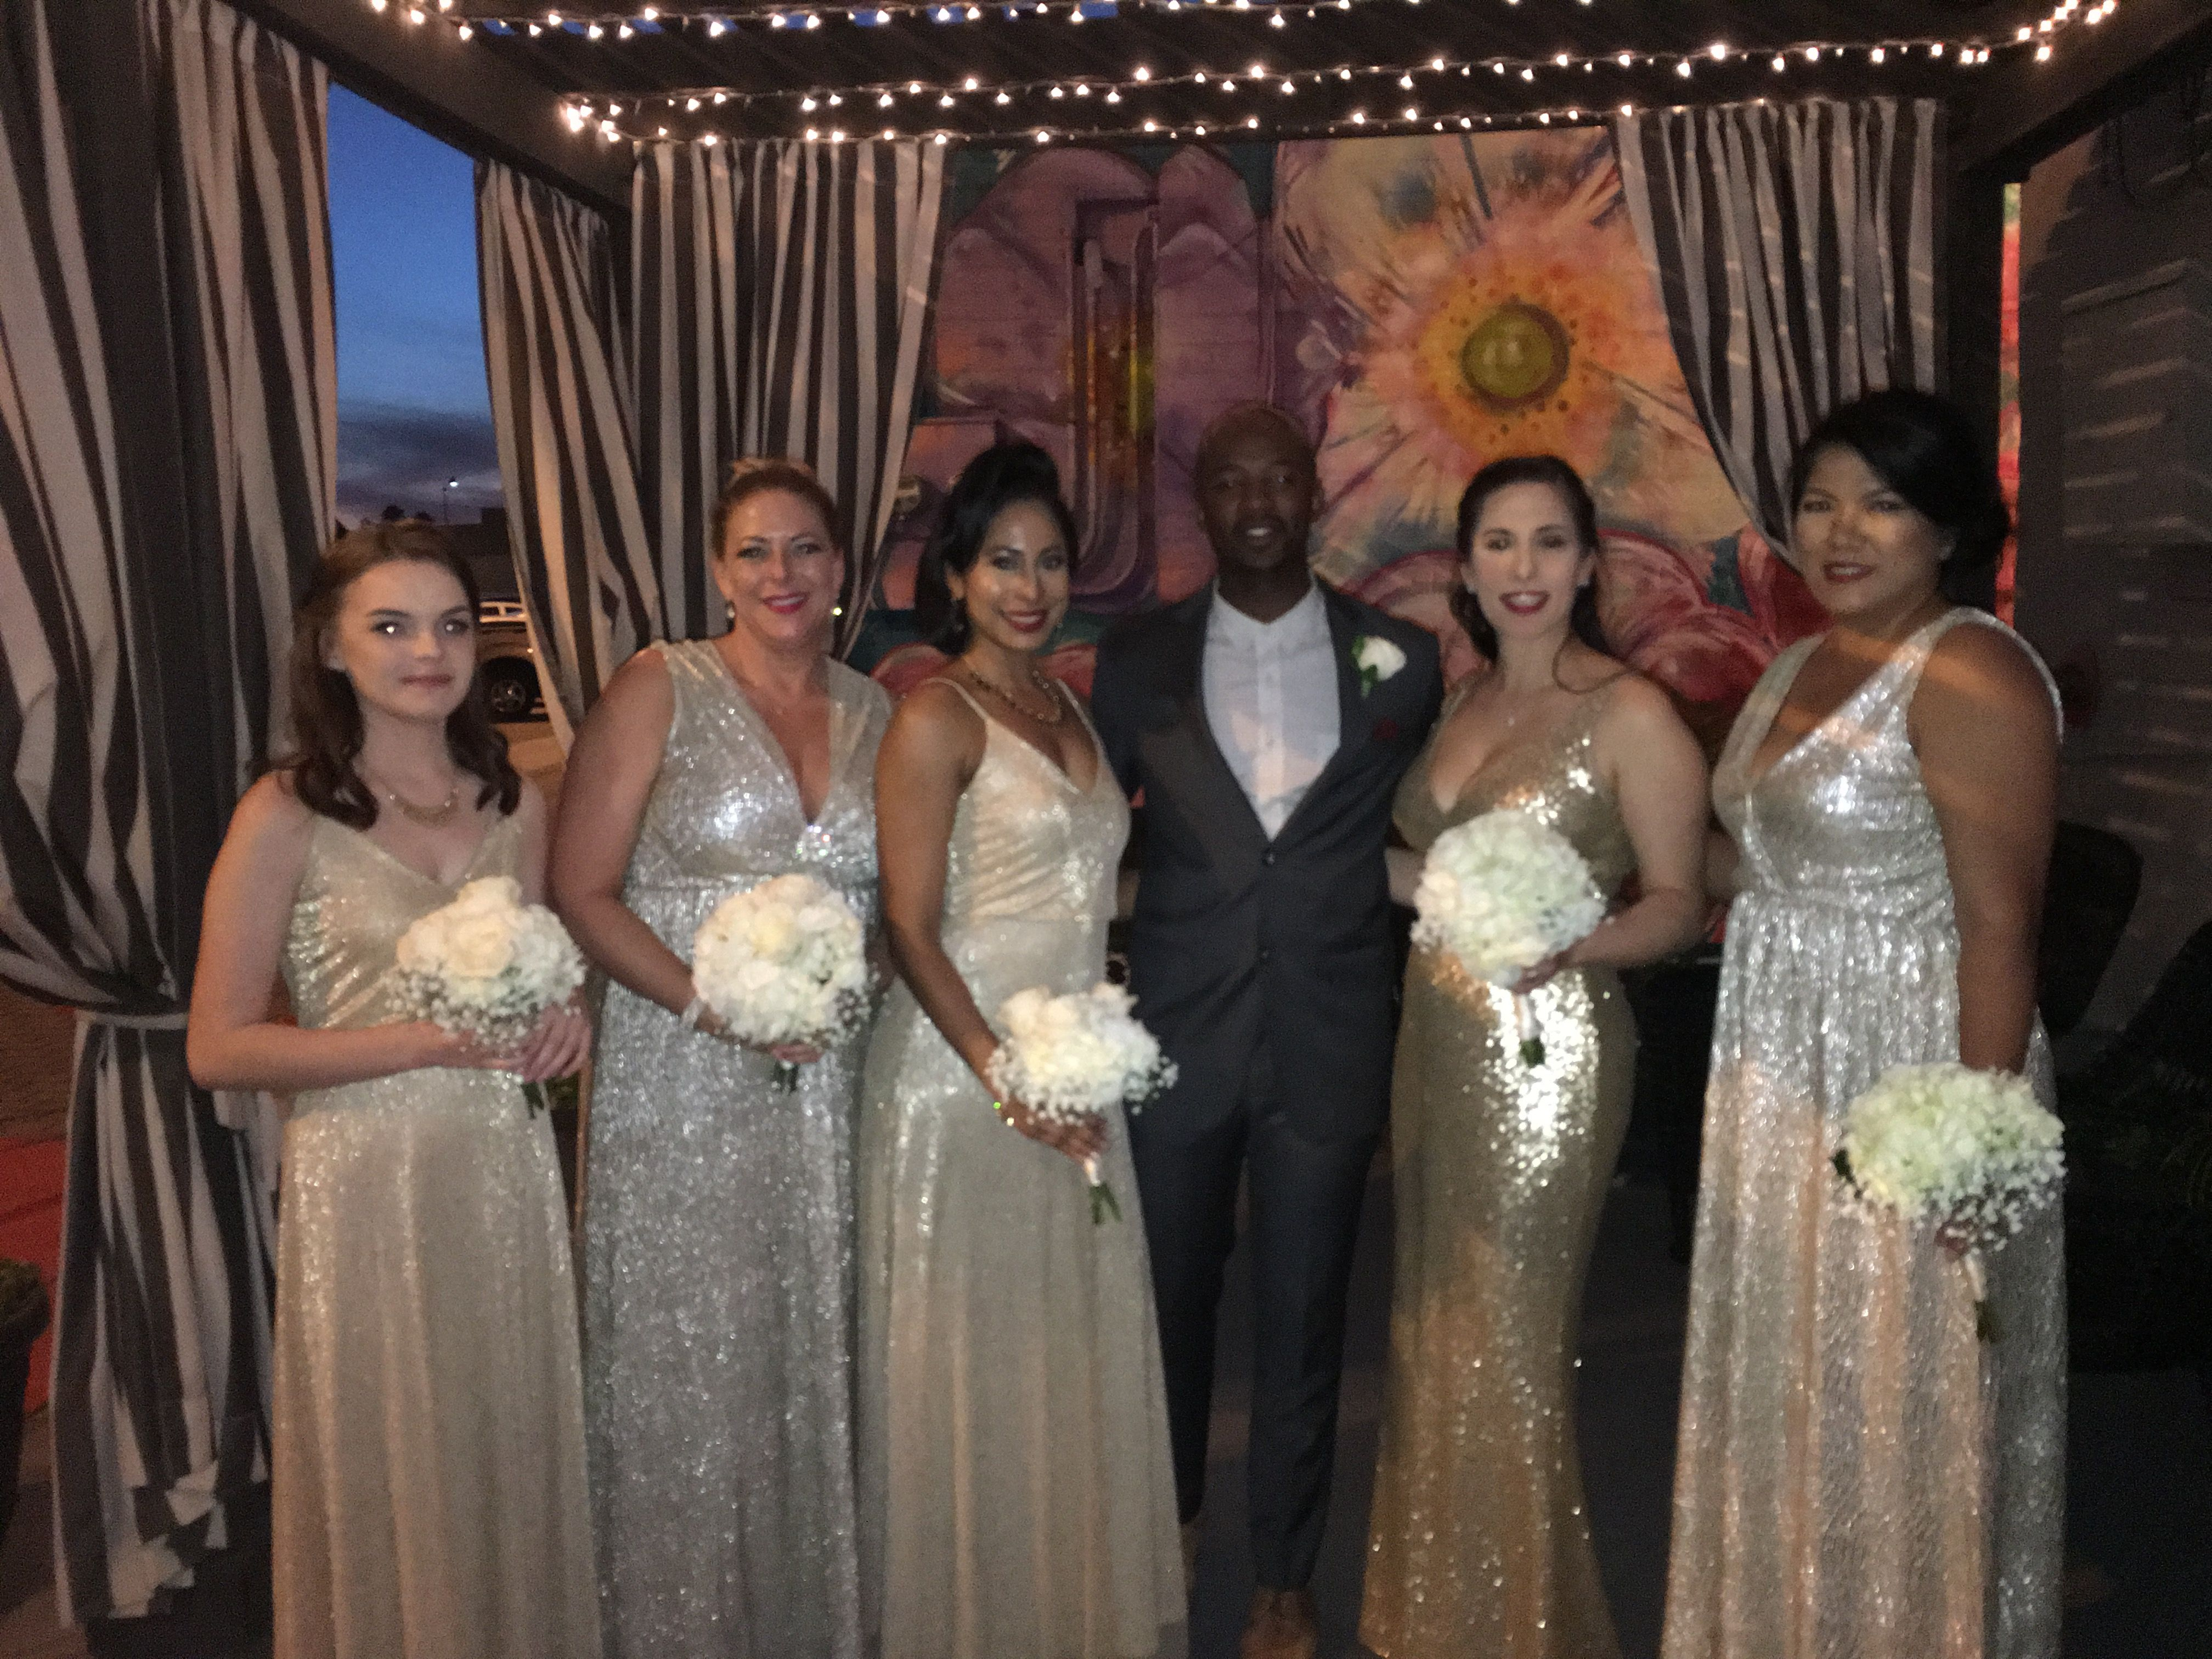 Gorgeous gold bridesmaids dresses from lulus 78 the maid of gorgeous gold bridesmaids dresses from lulus 78 the maid of honor is ombrellifo Image collections